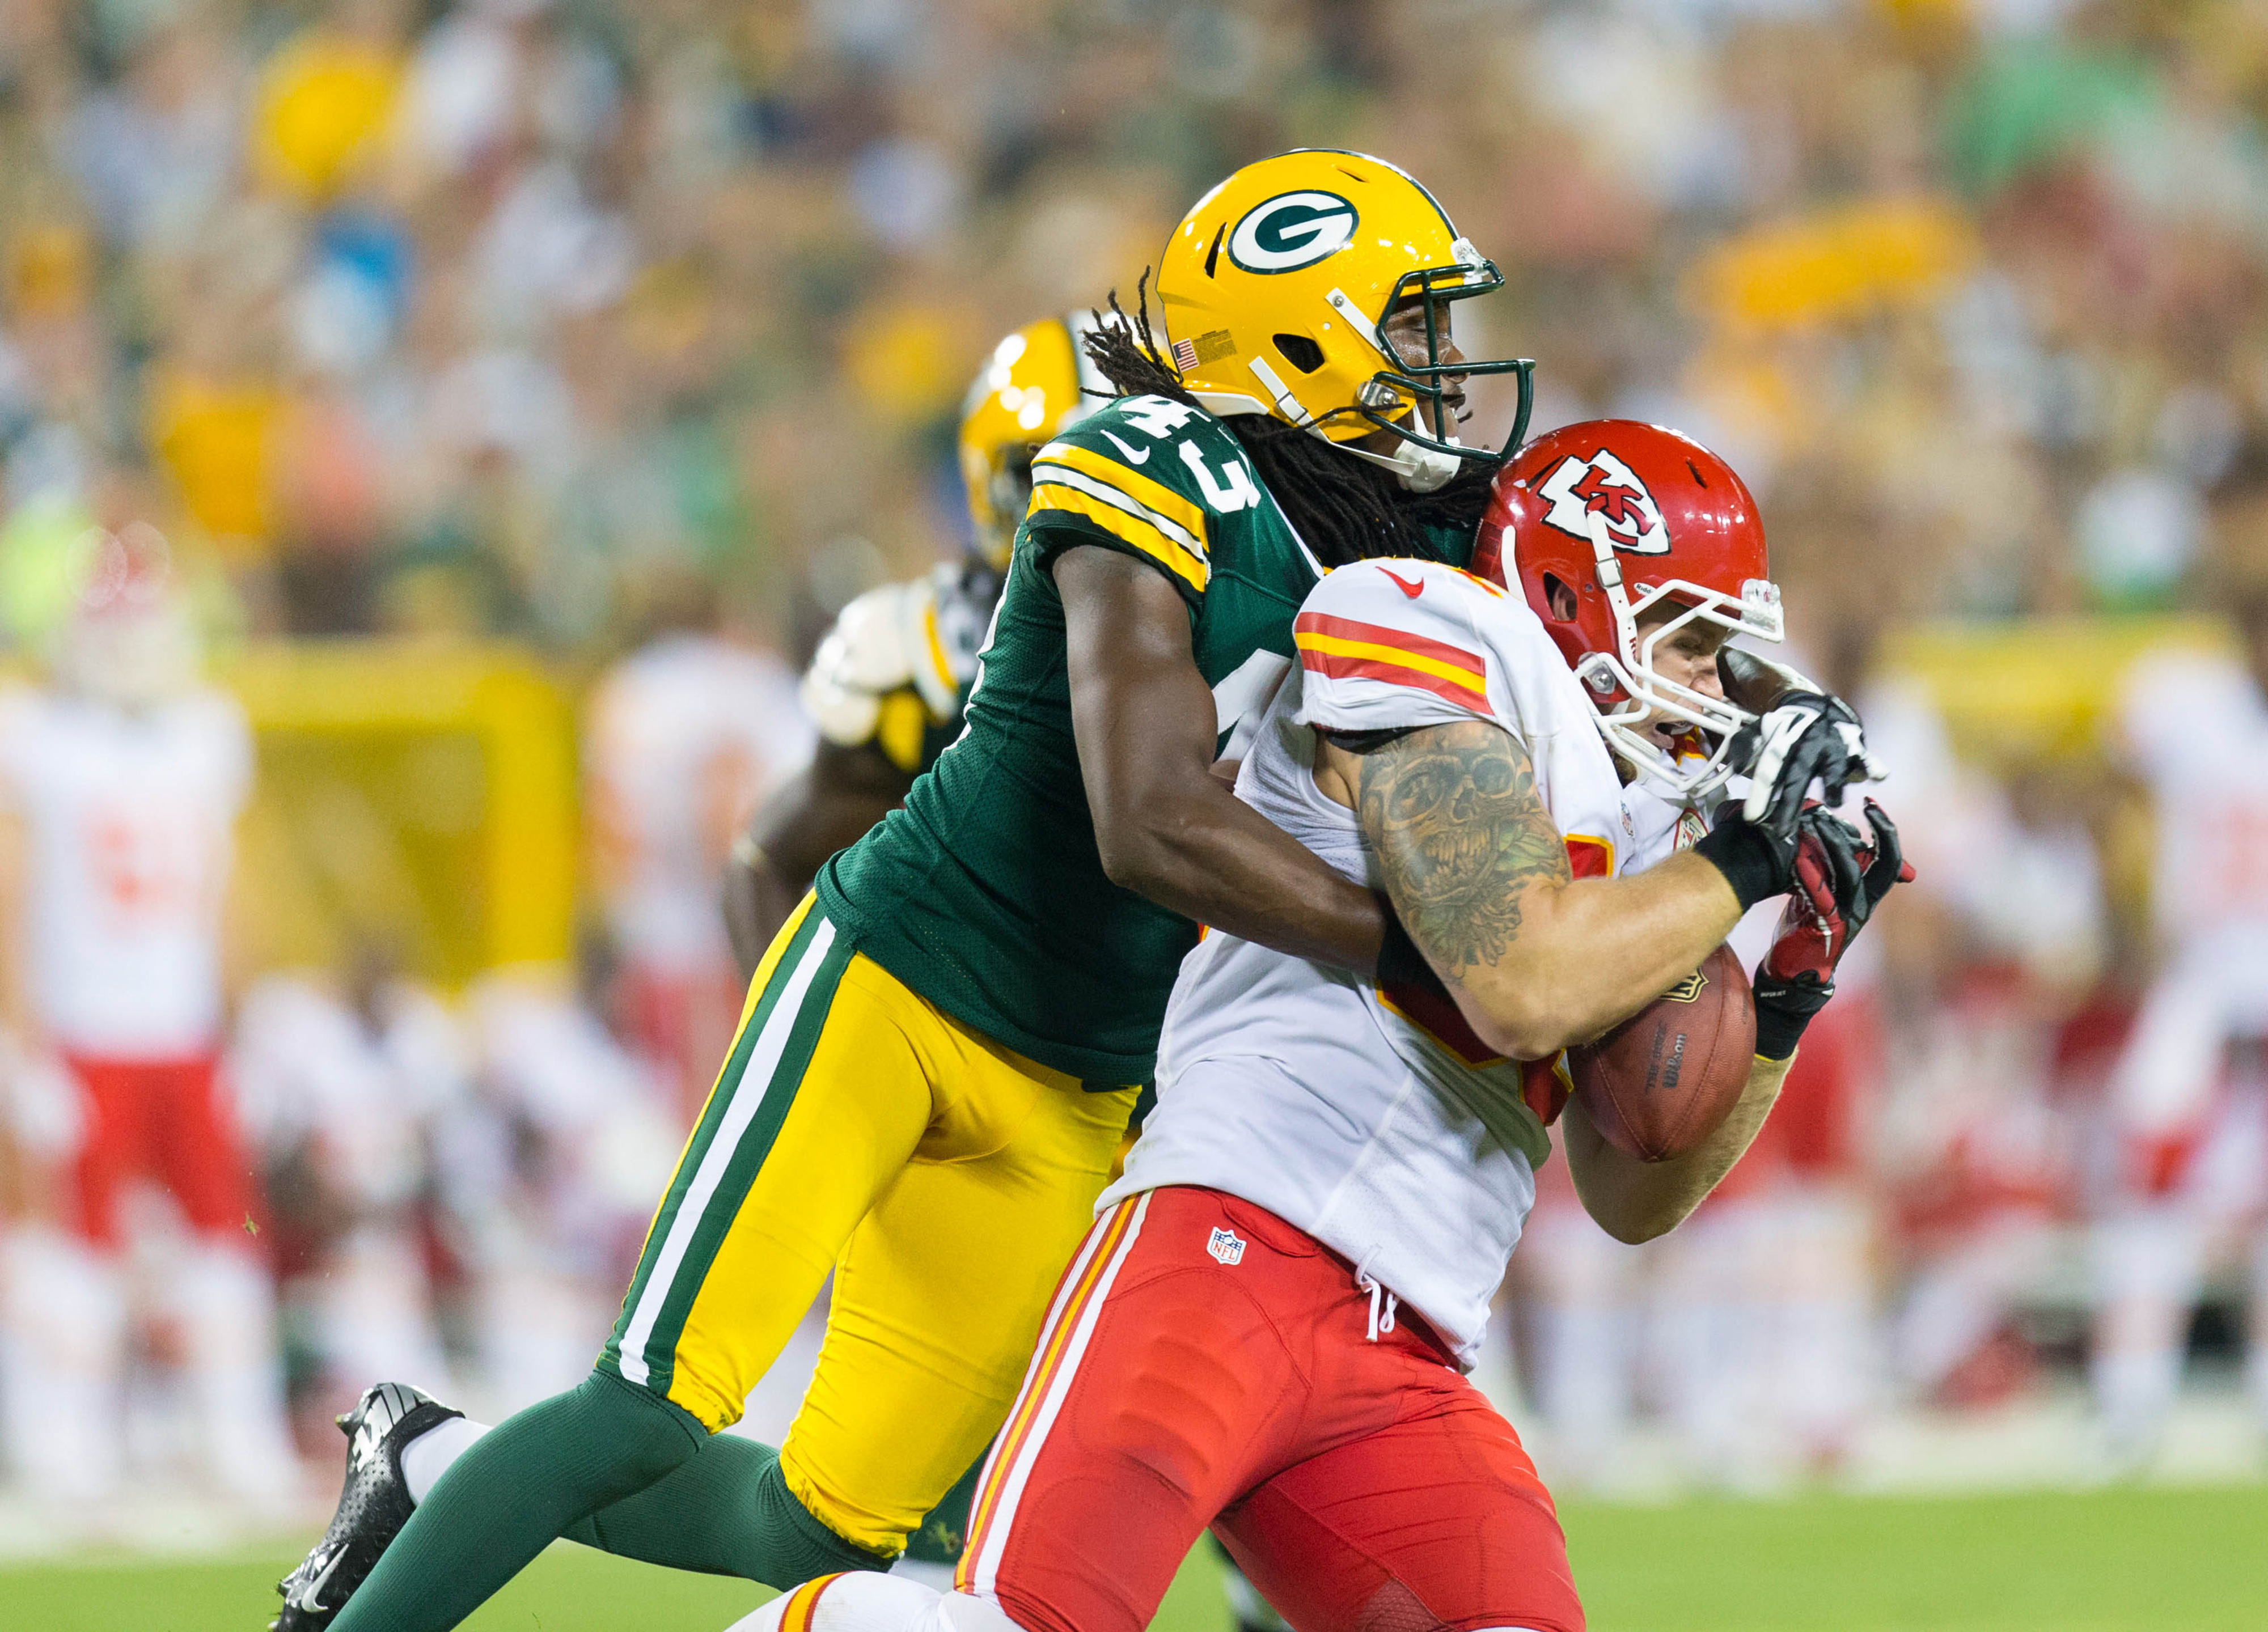 M.D. Jennings makes a tackle in last year's preseason game.